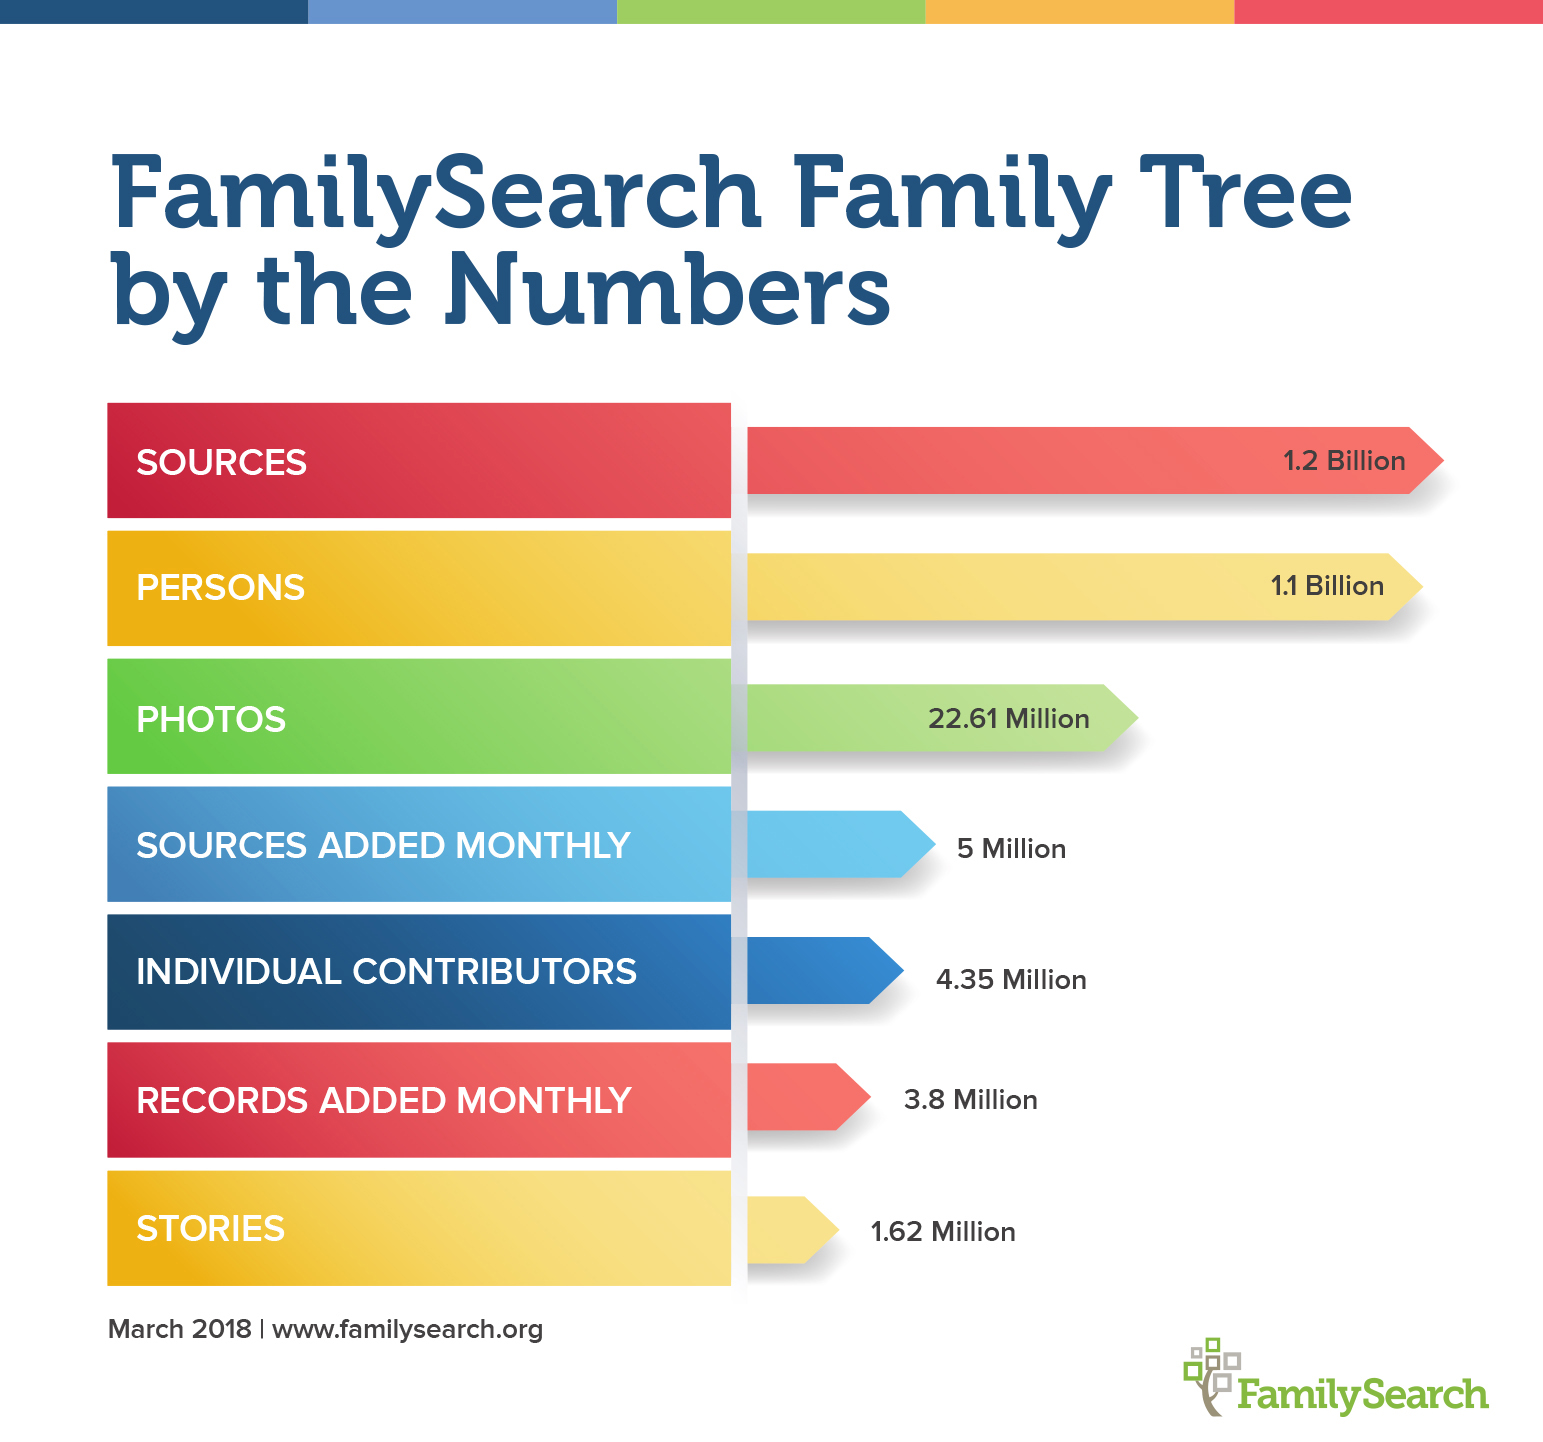 FamilySearch Family Tree by the Numbers